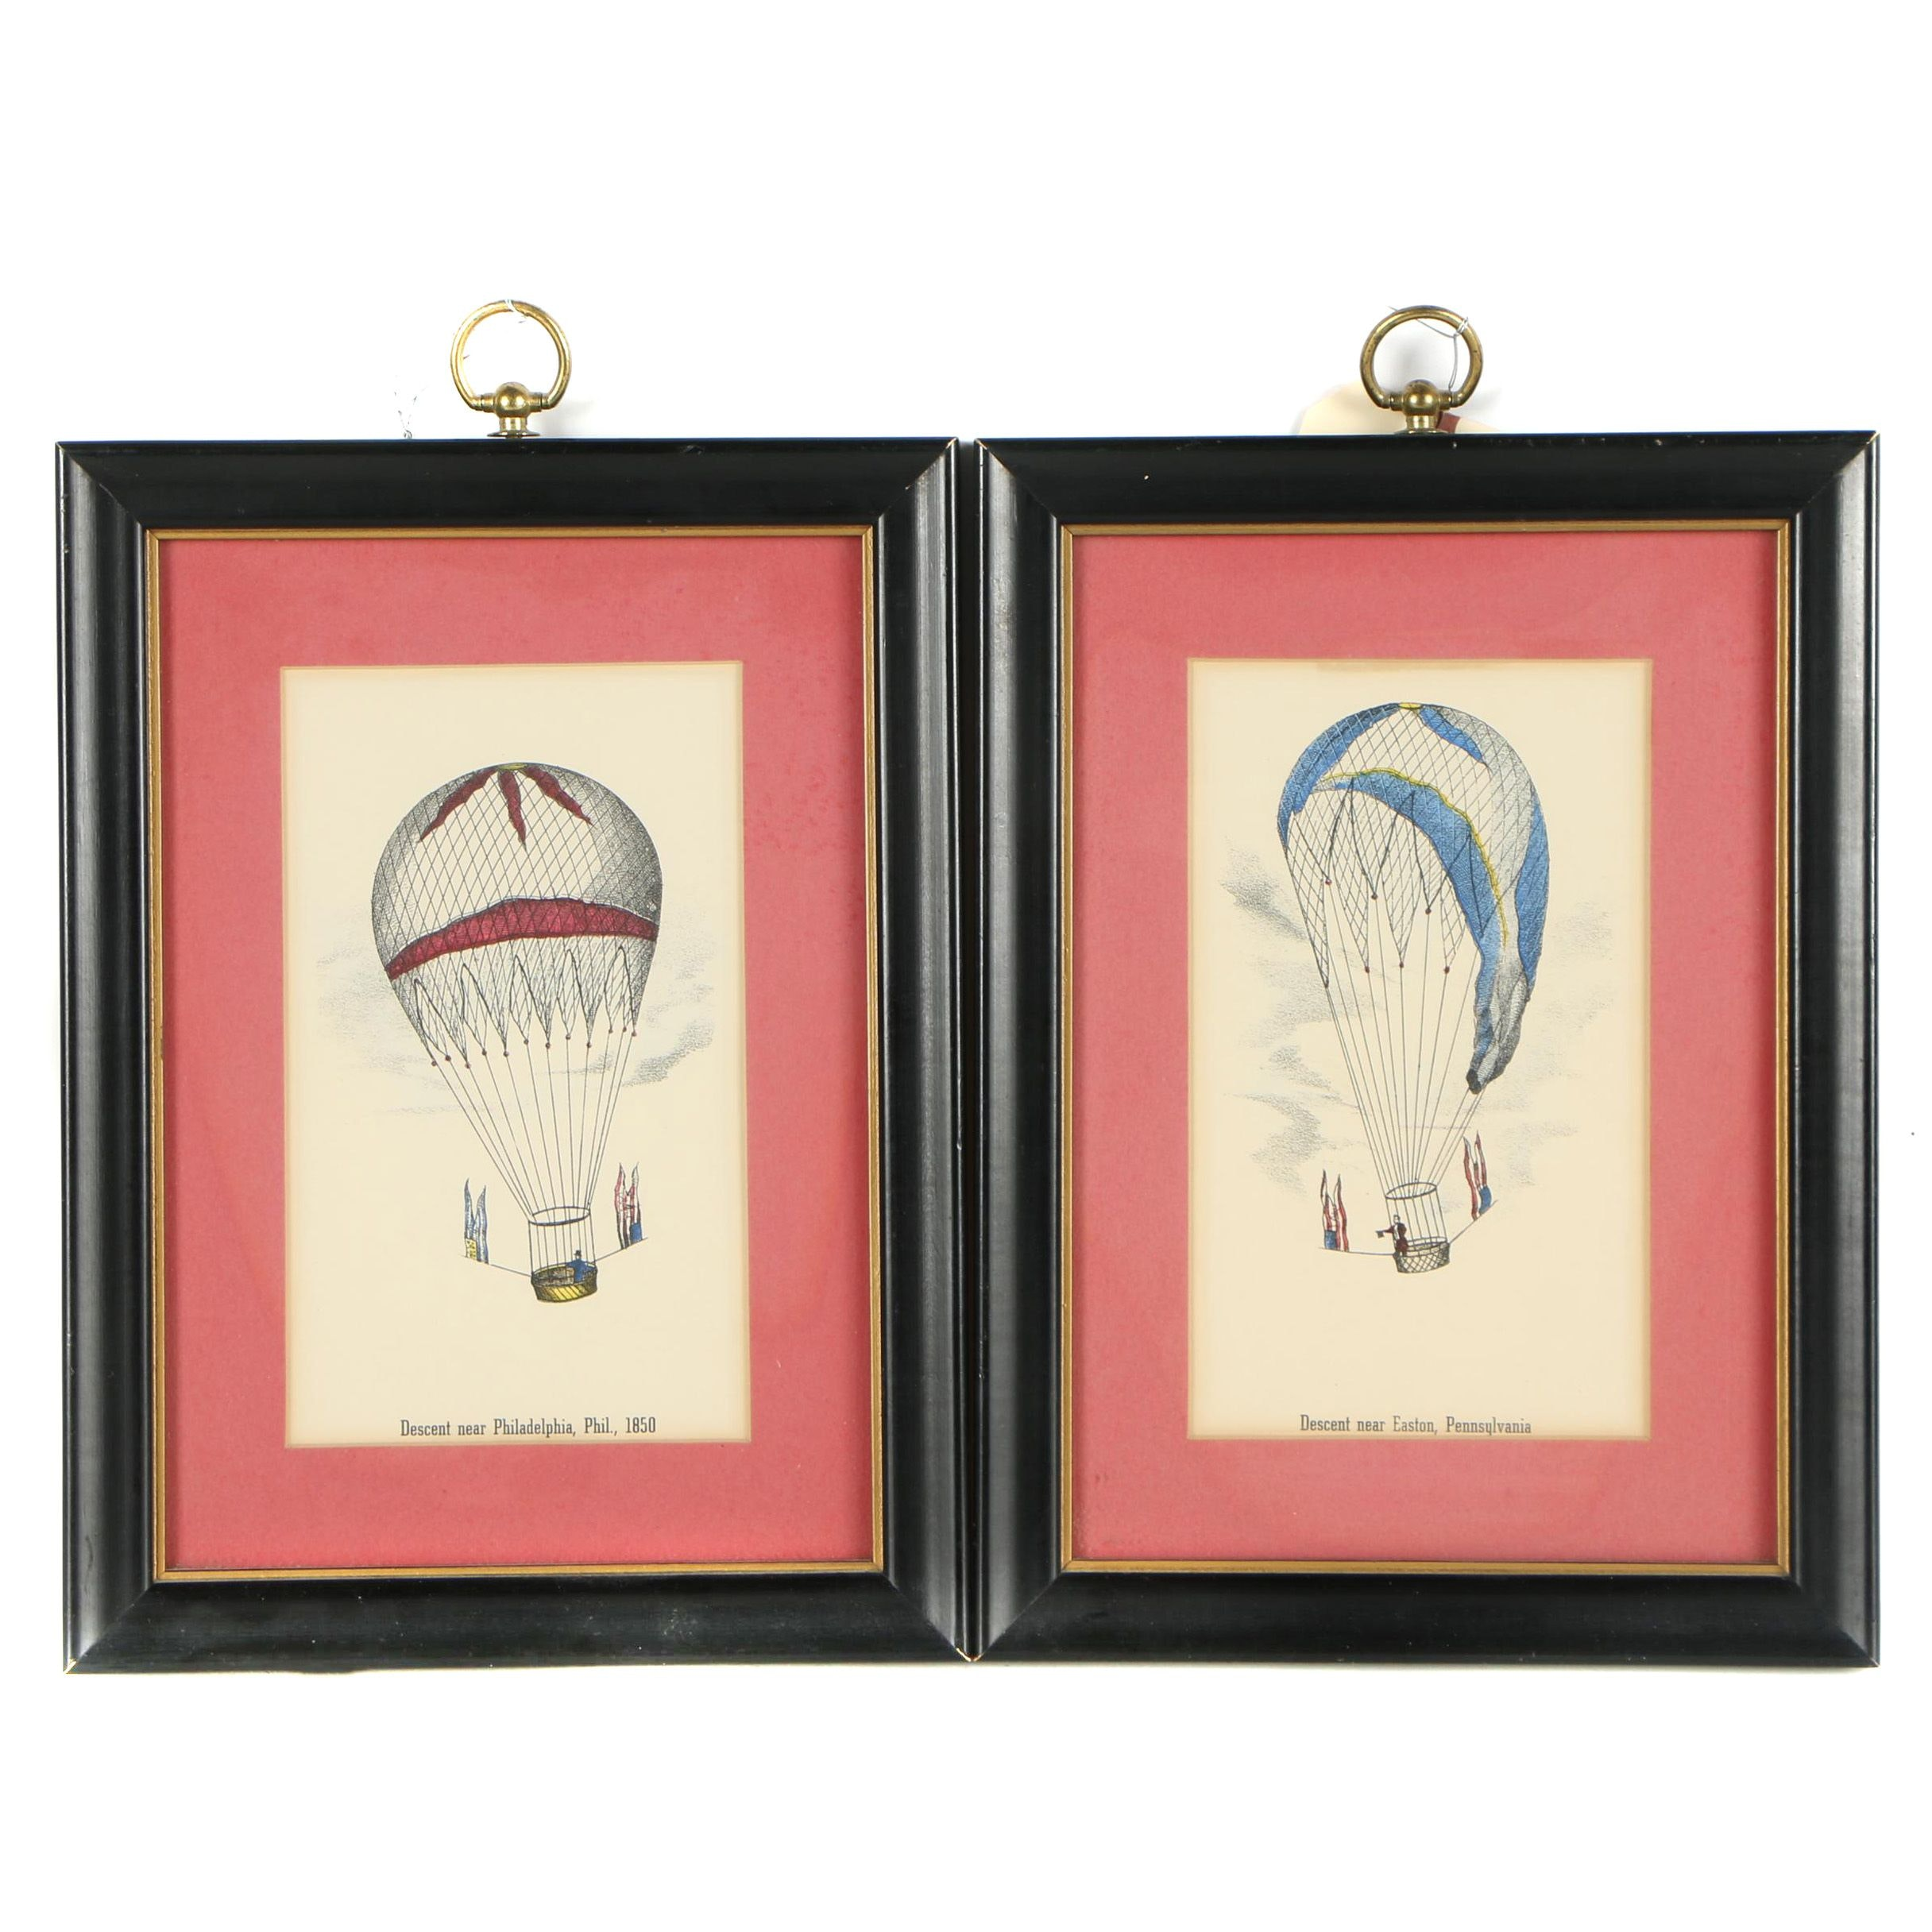 Photomechanical Reproduction Prints of 19th Century Hot Air Balloons